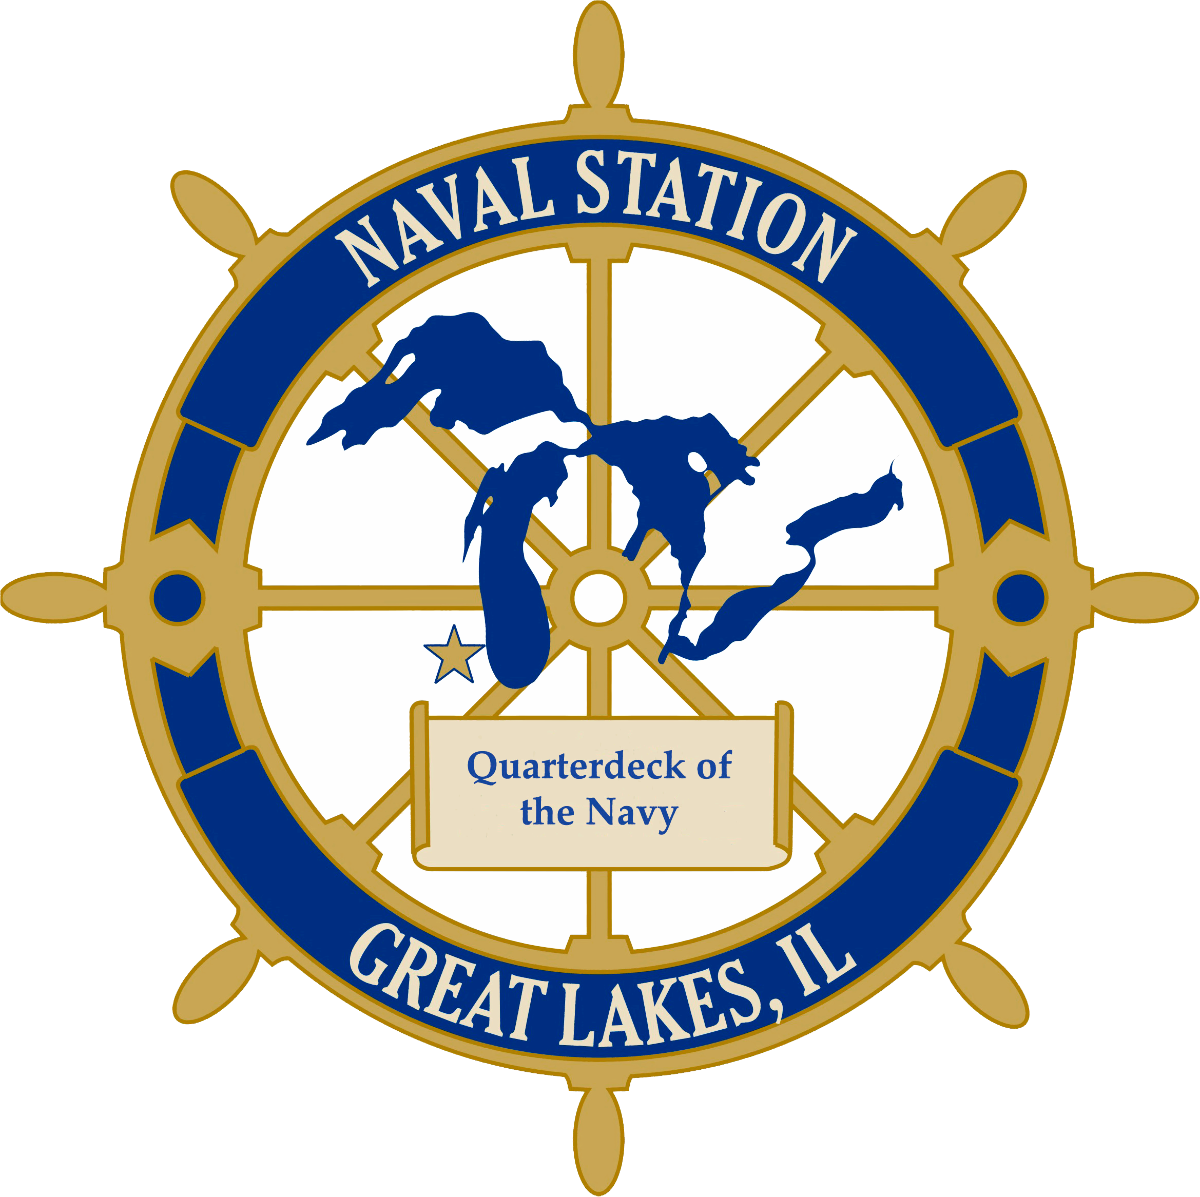 banner transparent stock Naval station great lakes. Navy clipart pearl harbor attack.